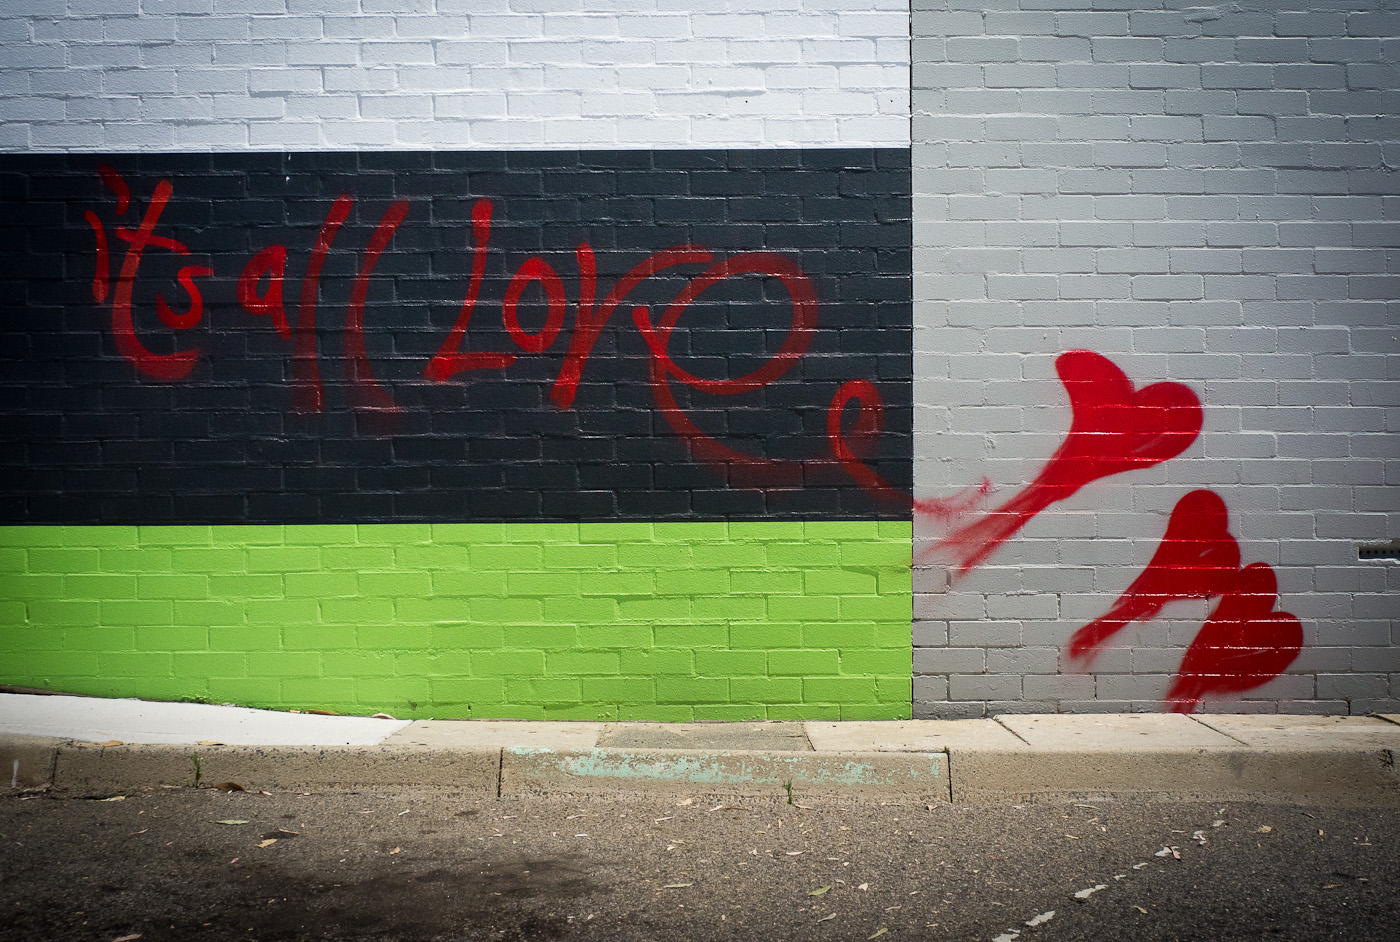 "A graffiti on a wall in Northbridge, Perth, reading ""It's all love"". Sony NEX-5n"